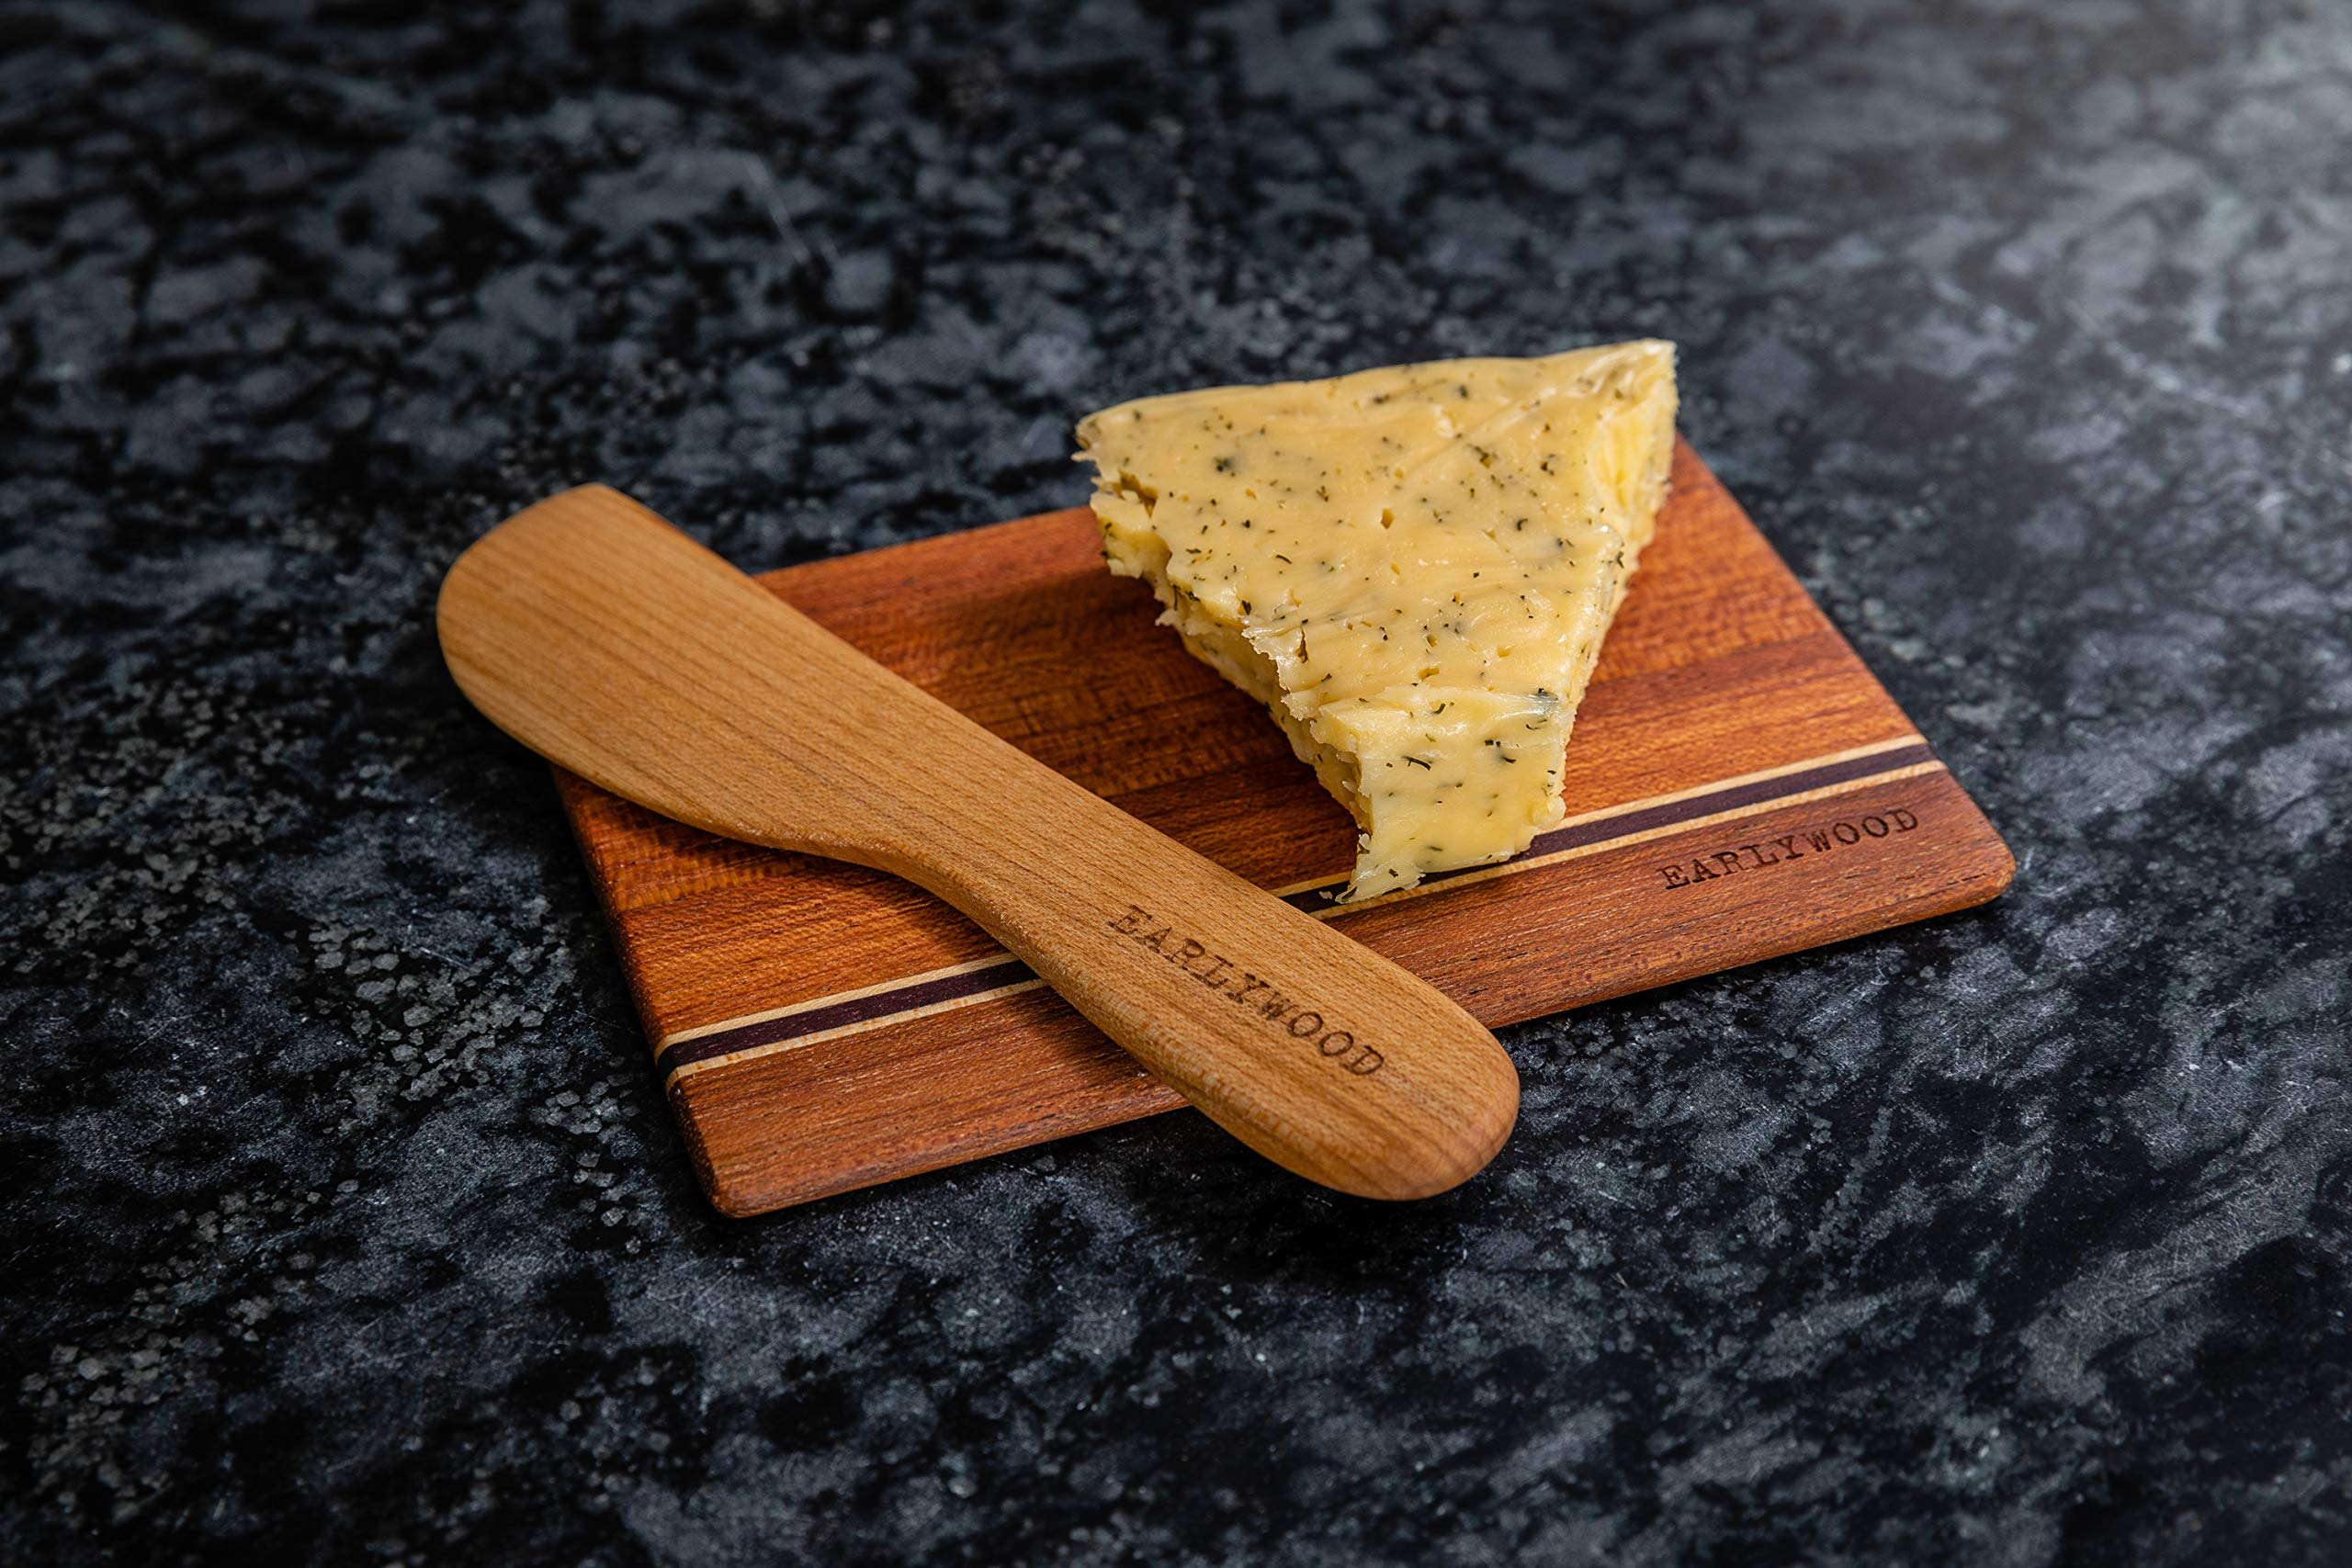 Small Wood Cutting Board Set. Set of 4 mini wooden cutting boards. Light and thin wood serving boards for wood cheese boards, spoon rests, trivets, wood serving set or bar cutting board set. The best! by Earlywood (Image #10)